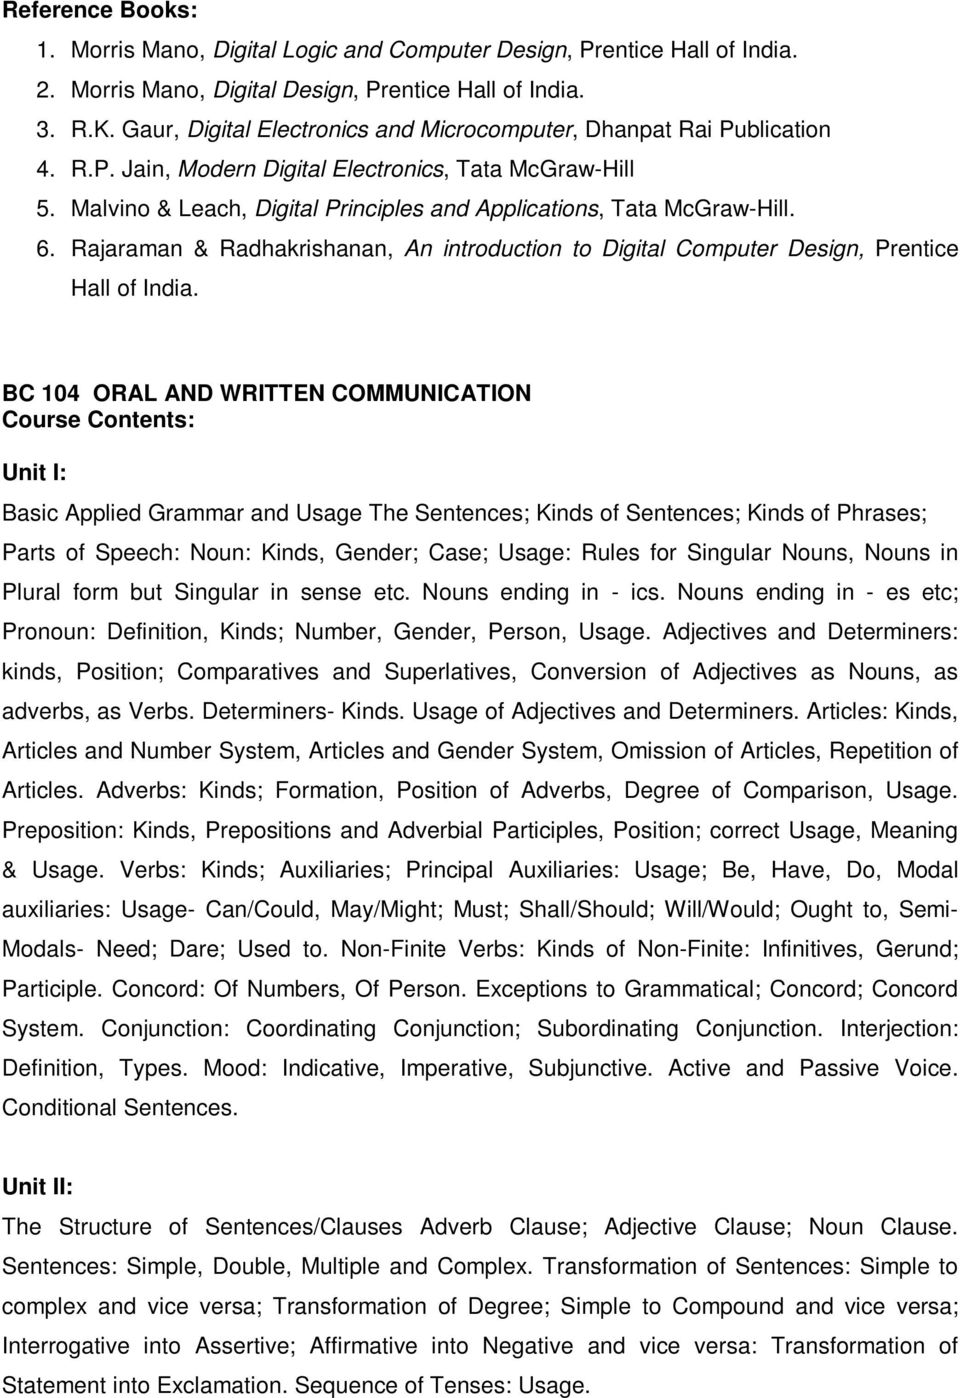 SYLLABUS FOR FIRST YEAR OF MASTER OF COMPUTER APPLICATIONS - PDF